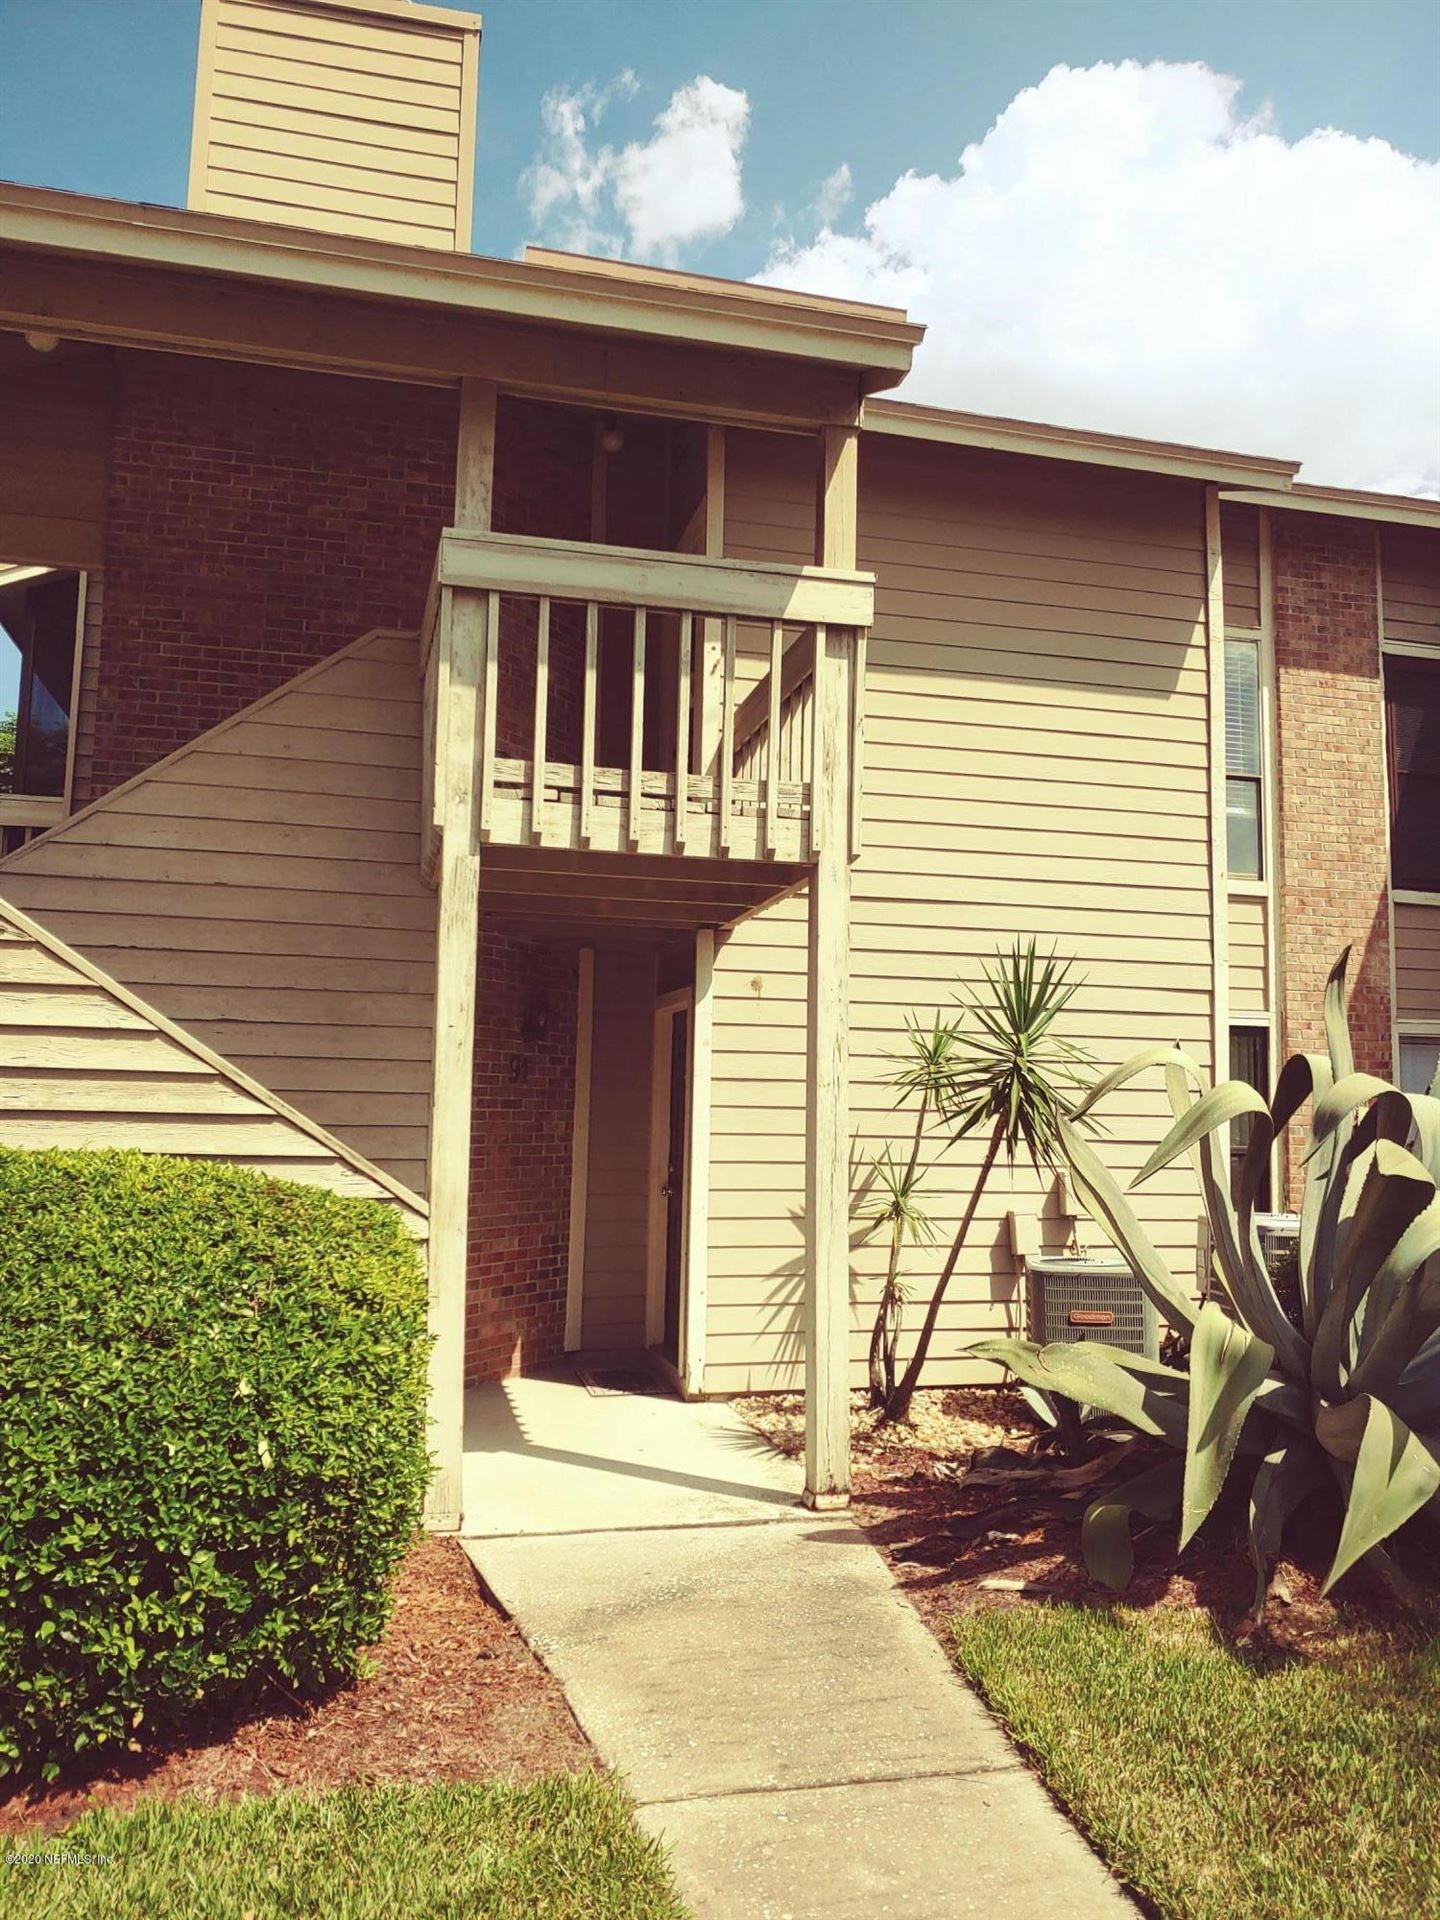 10200 BELLE RIVE BLVD #Unit No: 91 Lot No:, Jacksonville, FL 32256 - MLS#: 1072096